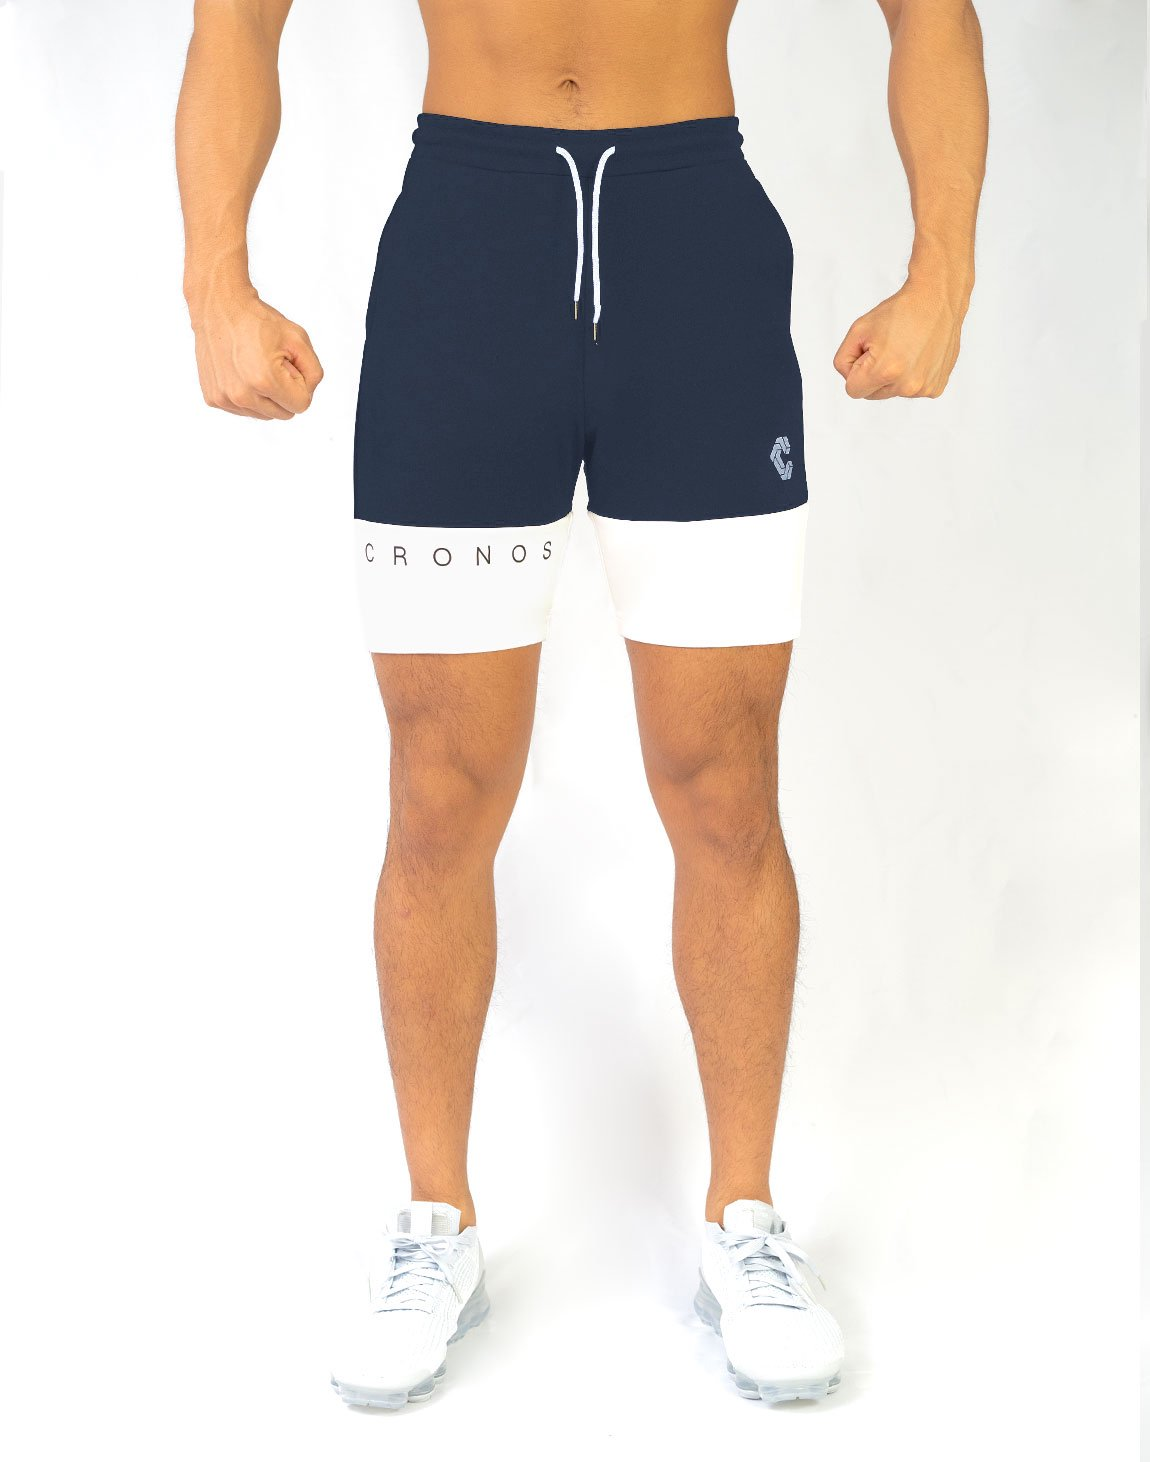 CRONOS TWO COLOR SHORTS【NAVY】